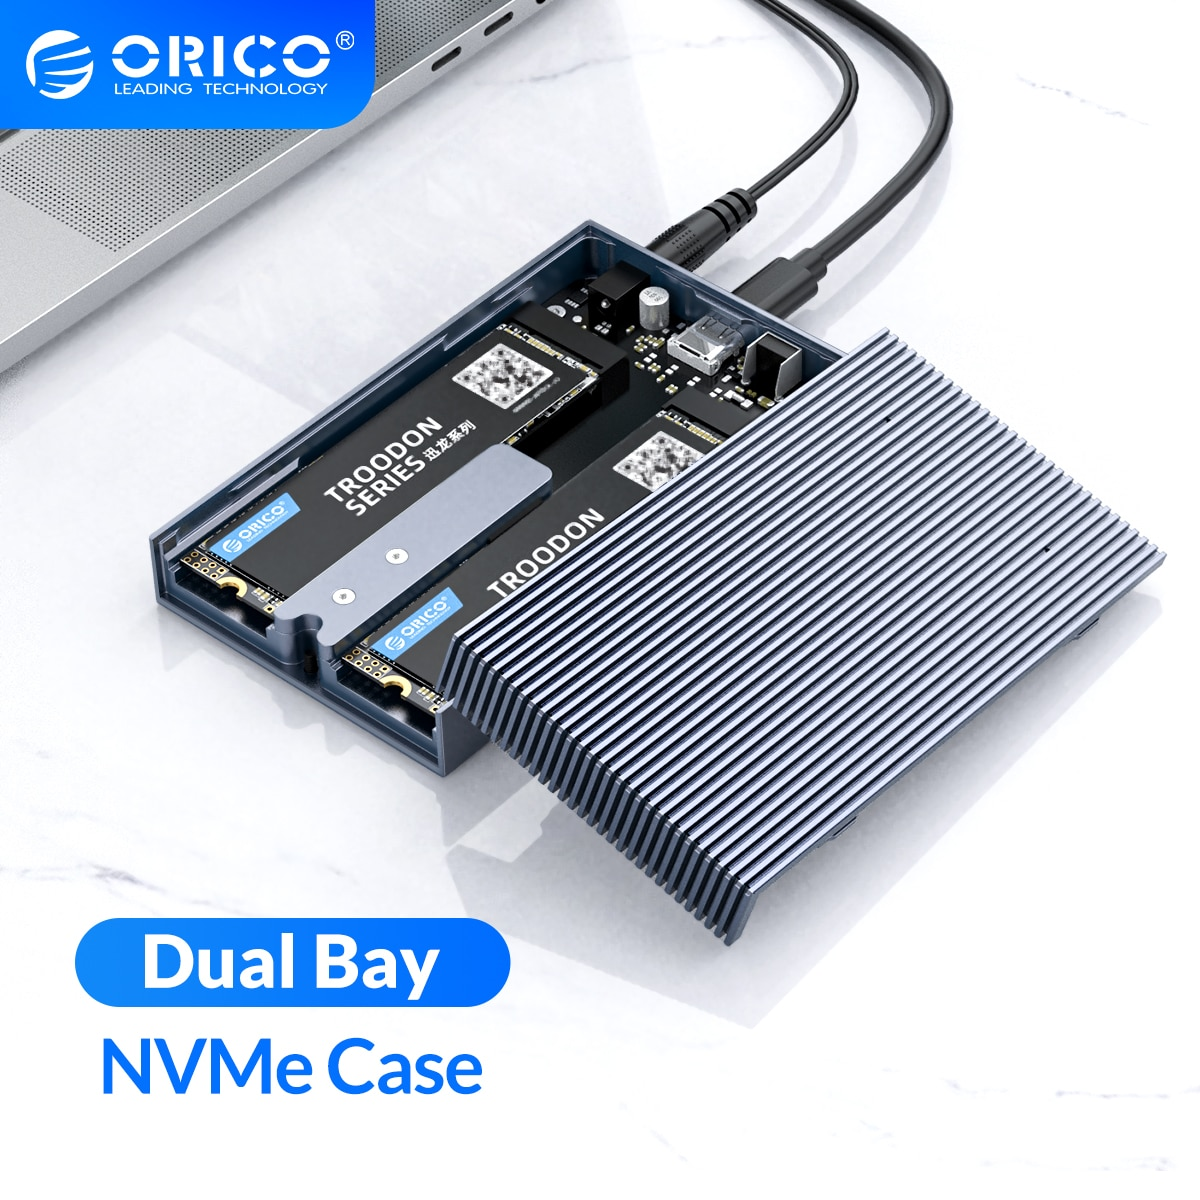 ORICO Dual Bay Aluminum M.2 NVME SSD Enclosure USB C 3.1 Gen2 10Gbps For M Key & M/B Key NVME PCIe SSD With 5V4A Power Adapter